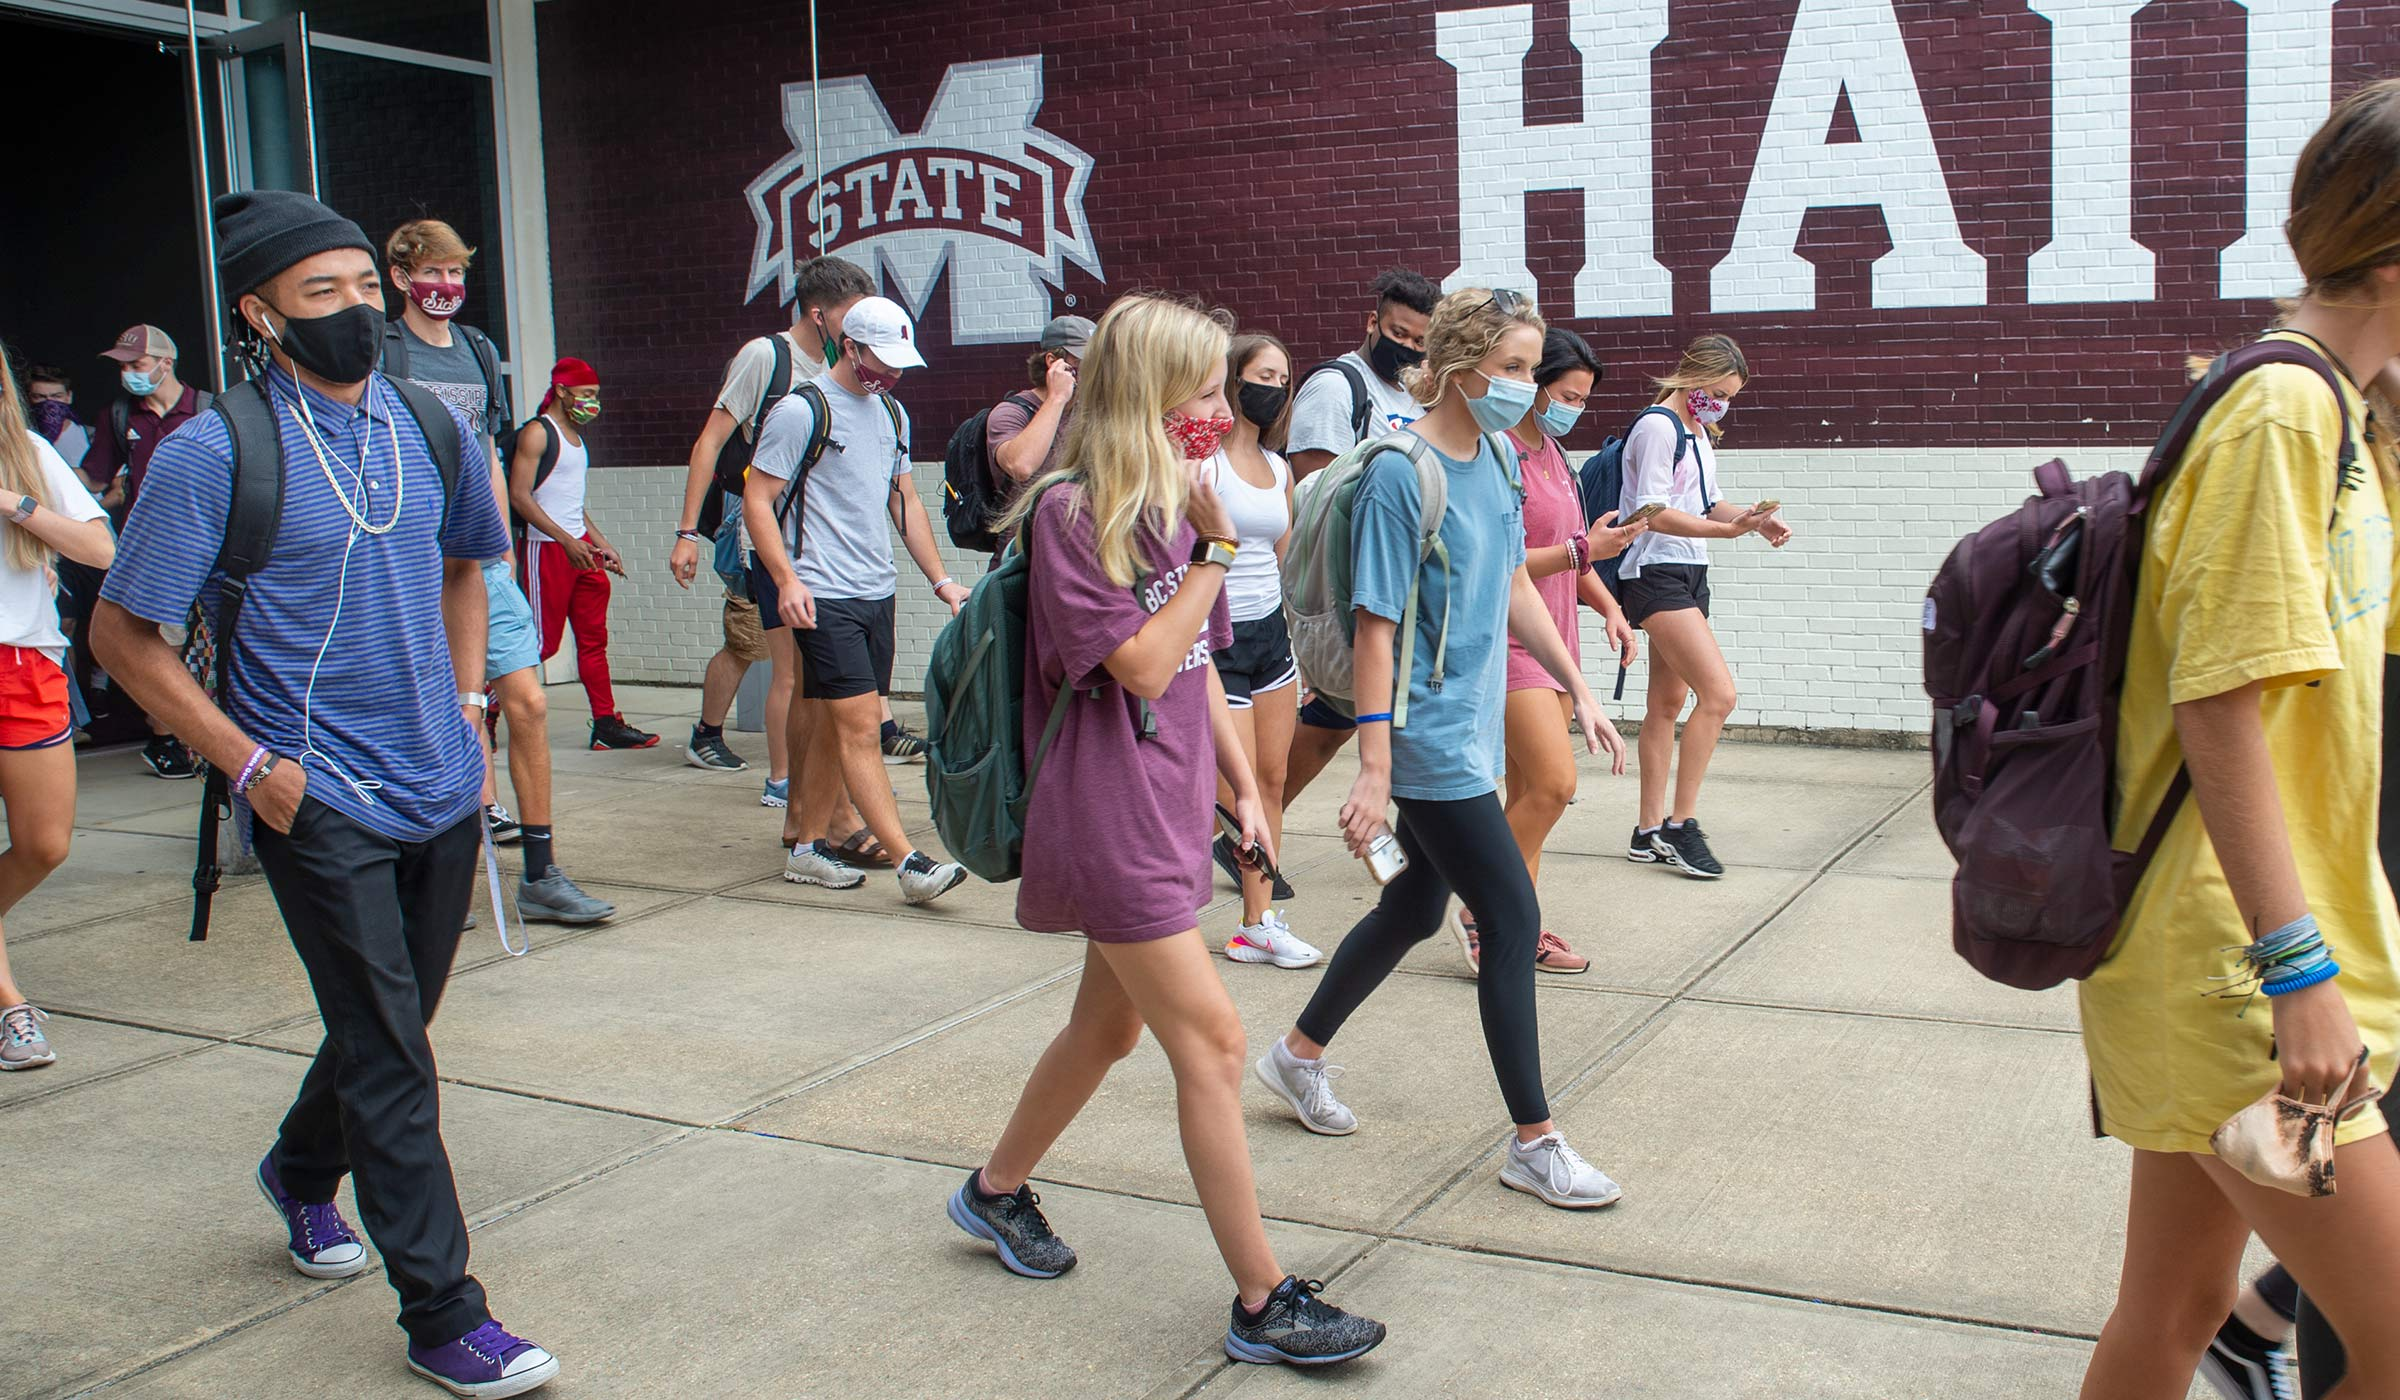 With a bit of the Hump's Hail State sign behind them, masked students exit the doors of the Mize Pavillion entrance after class.